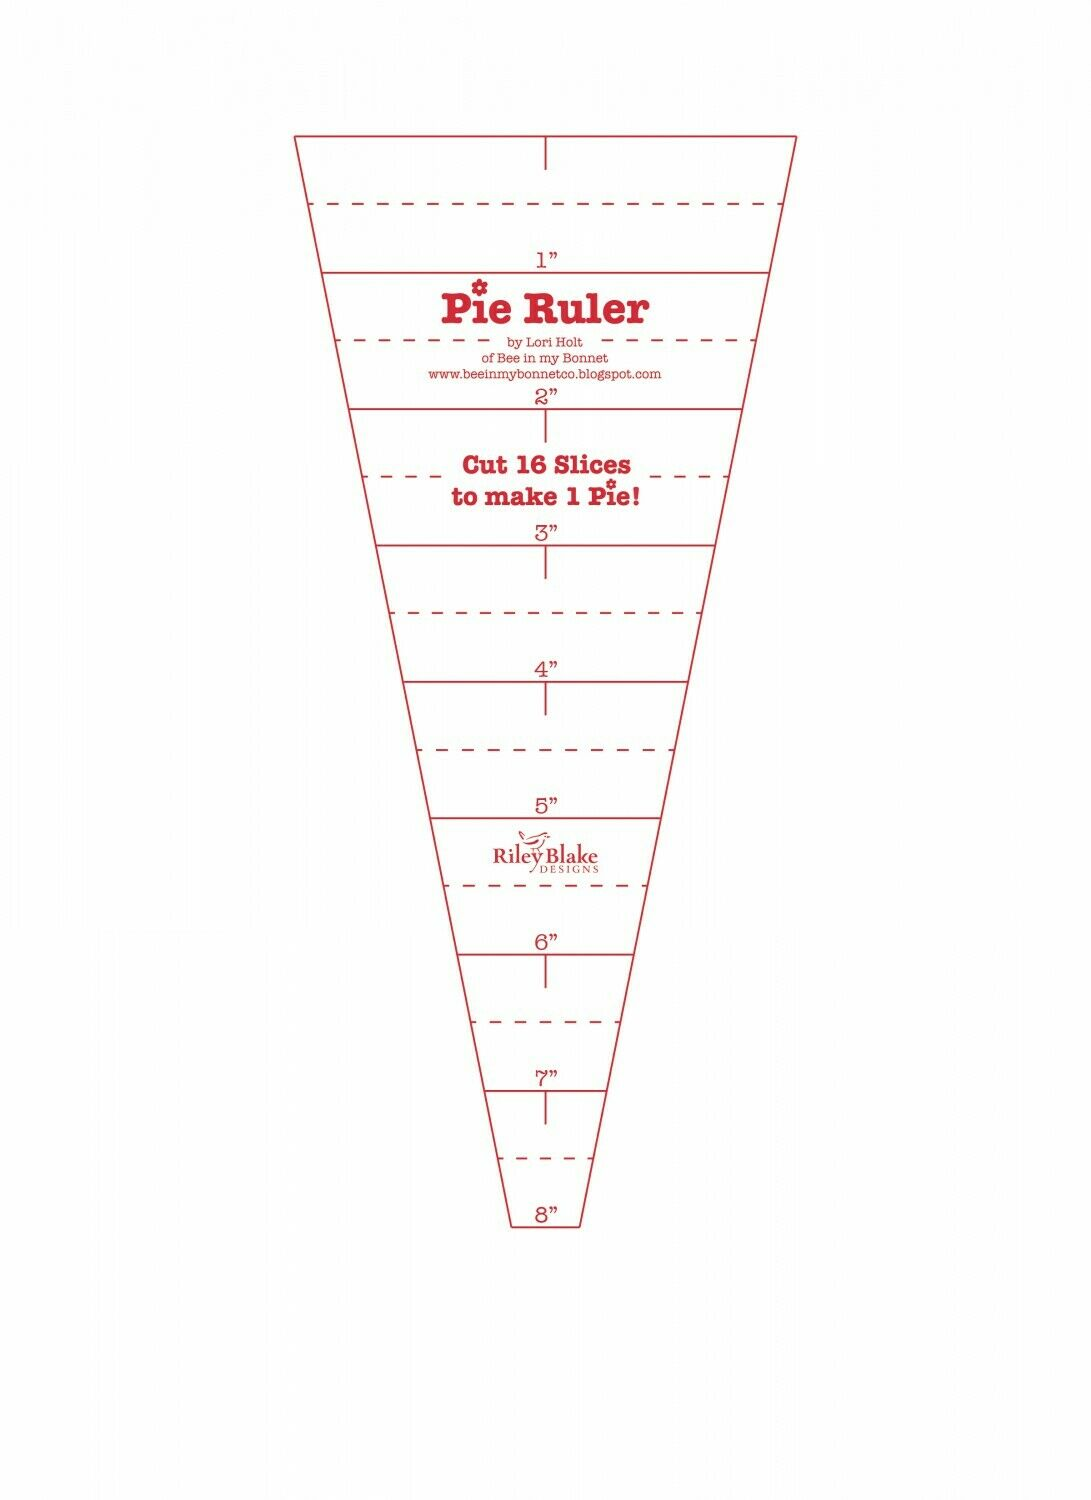 Pie Ruler by Lori Holt 8 inches and 22-1/2 Degrees